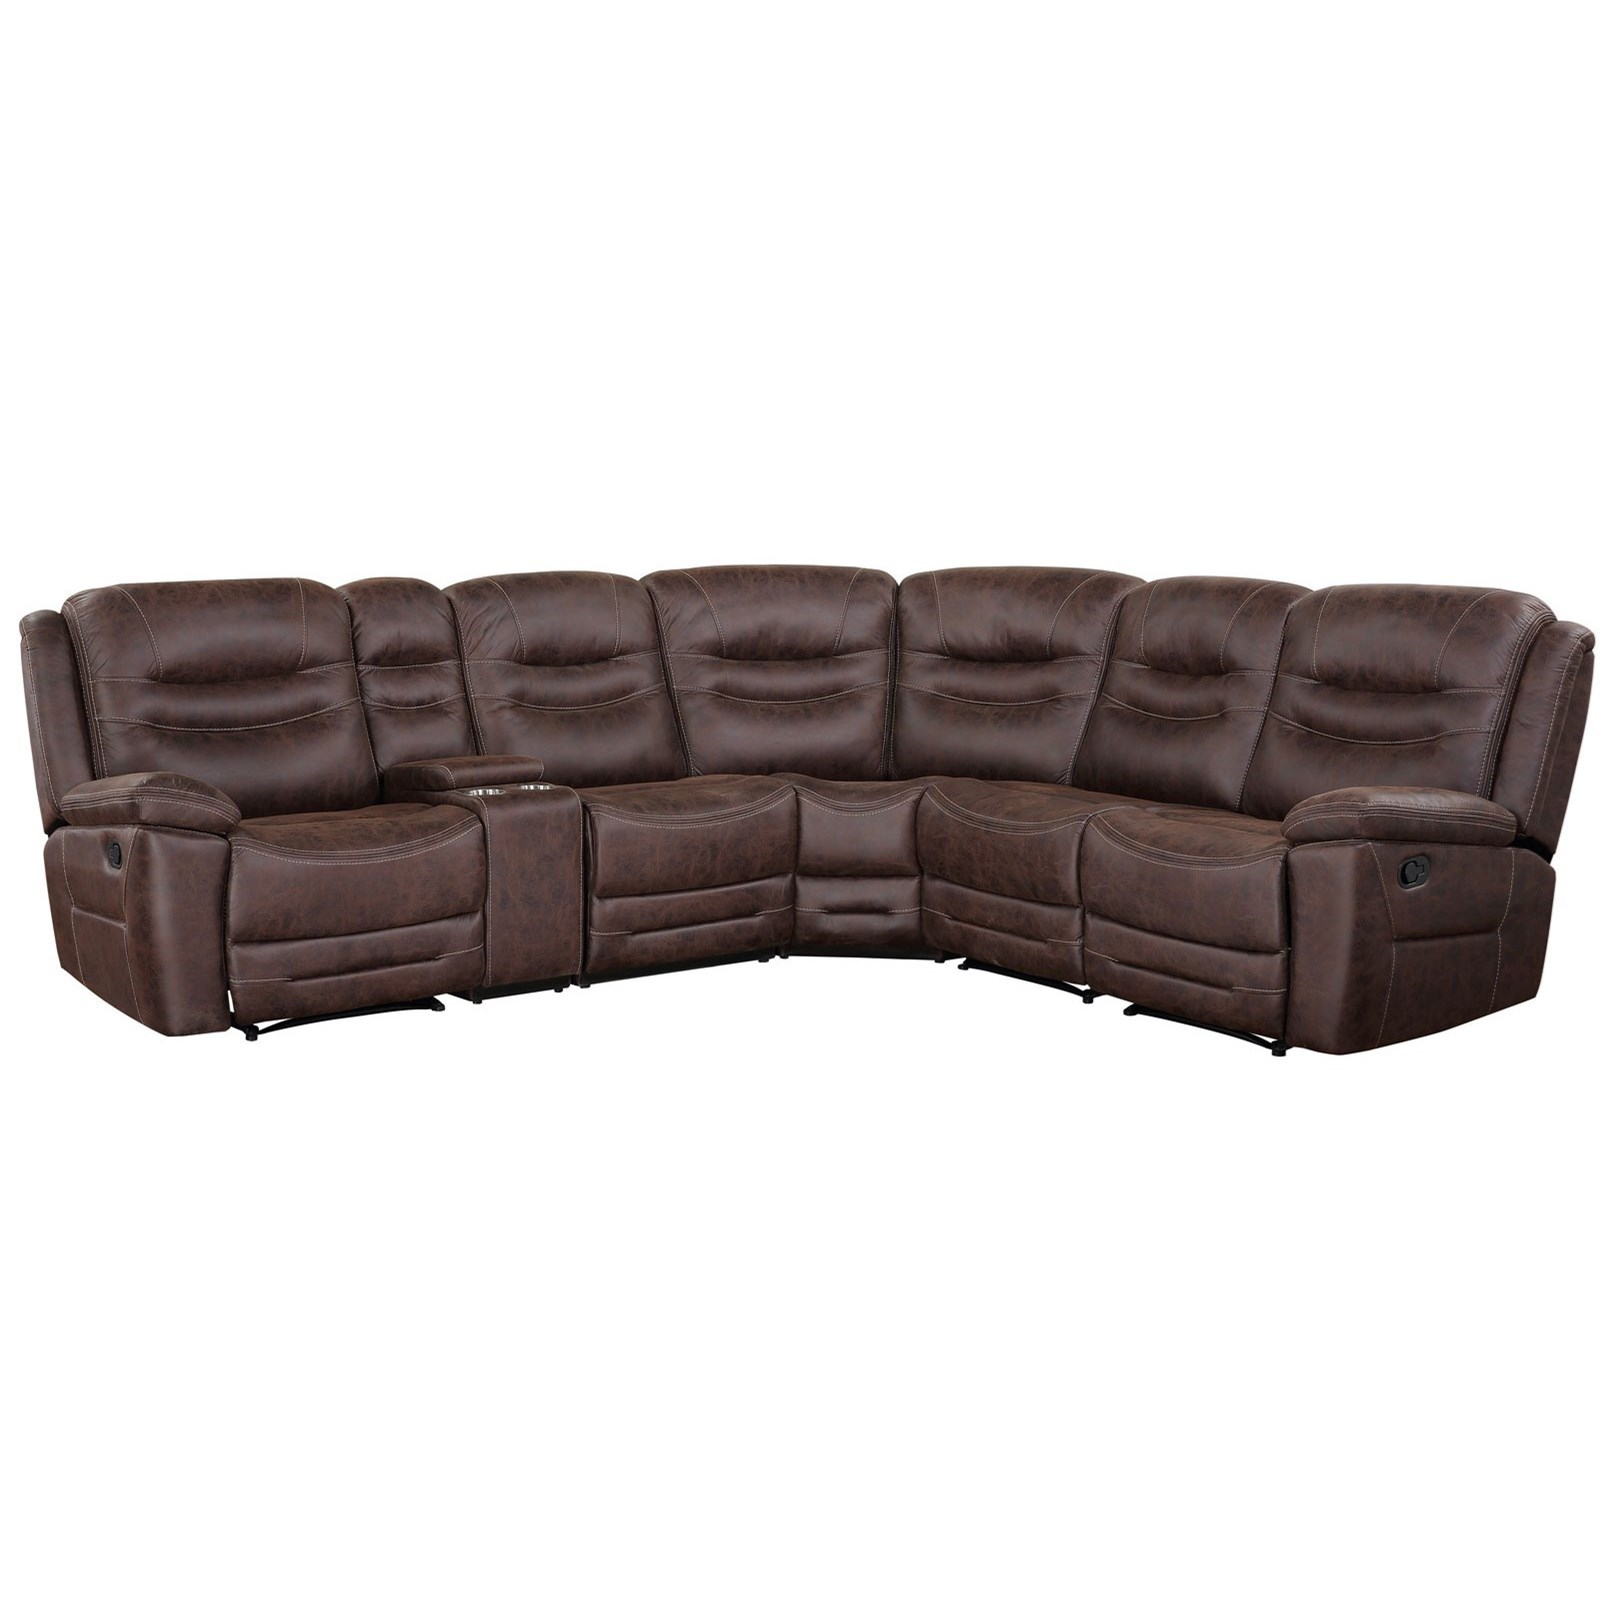 Stetson 6-Piece Sectional by Steve Silver at Northeast Factory Direct